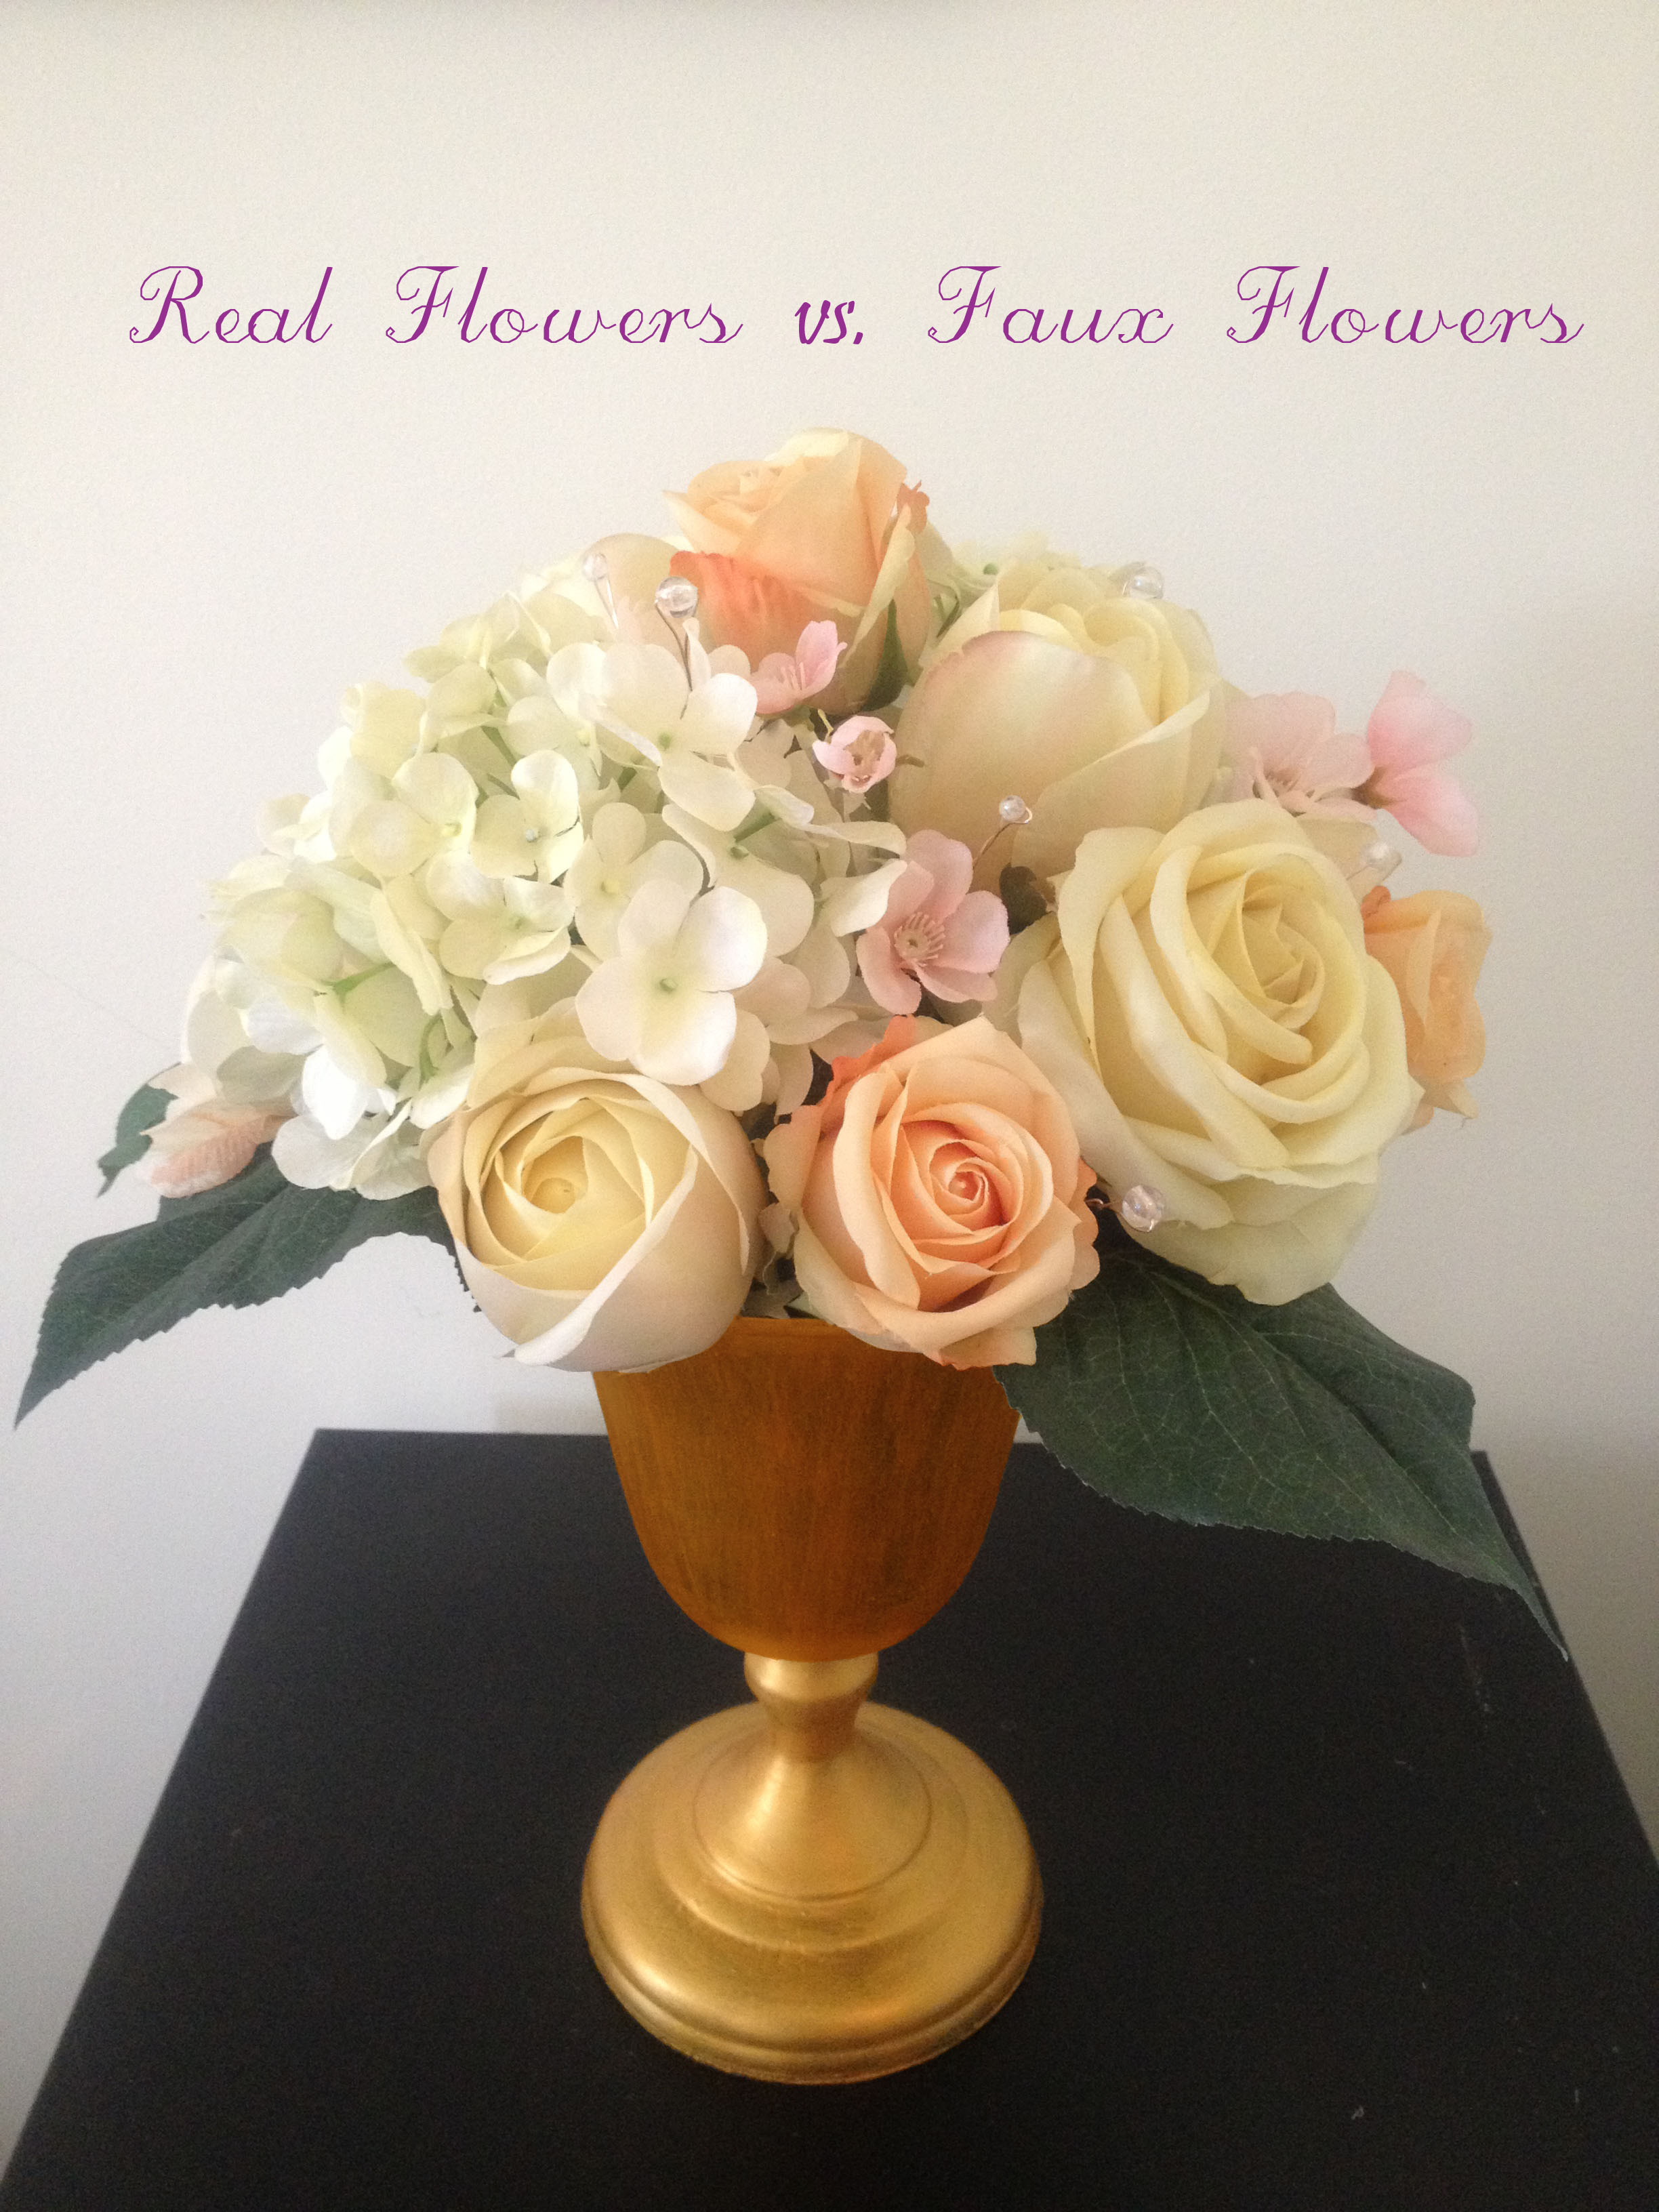 This arrangement we created for an Event planner. This is faux flower piece.